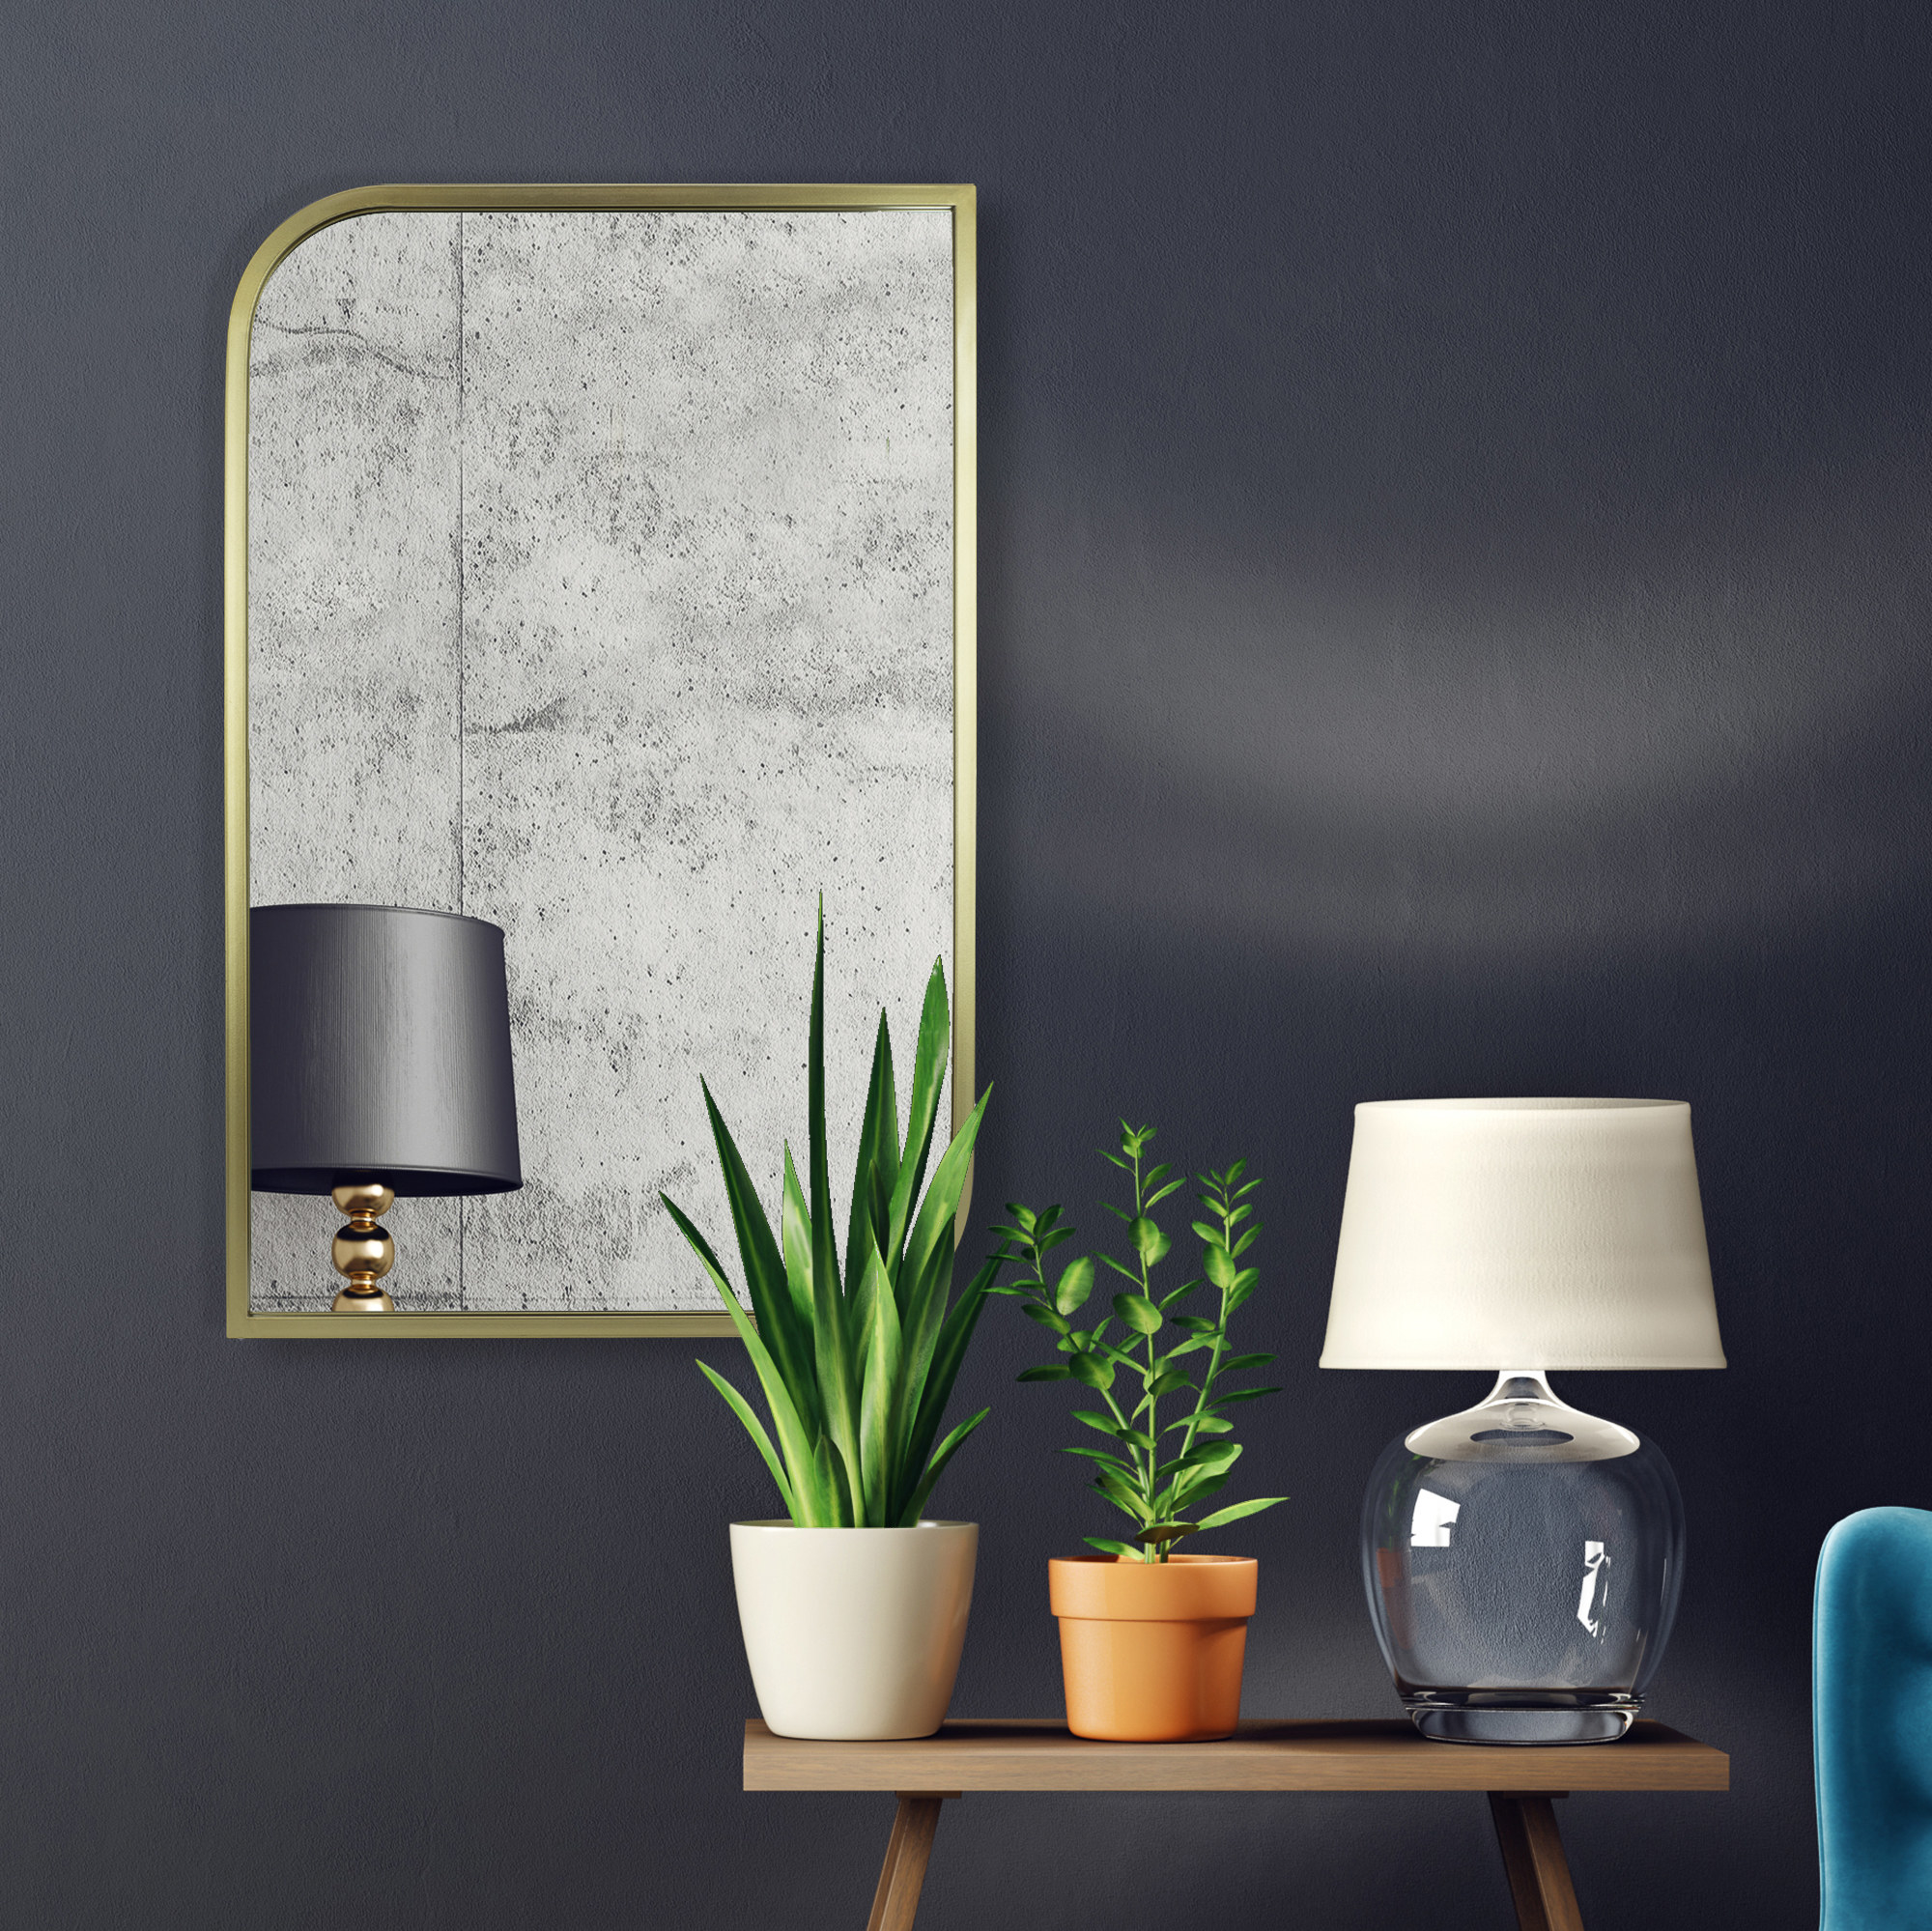 The gold mirror hanging